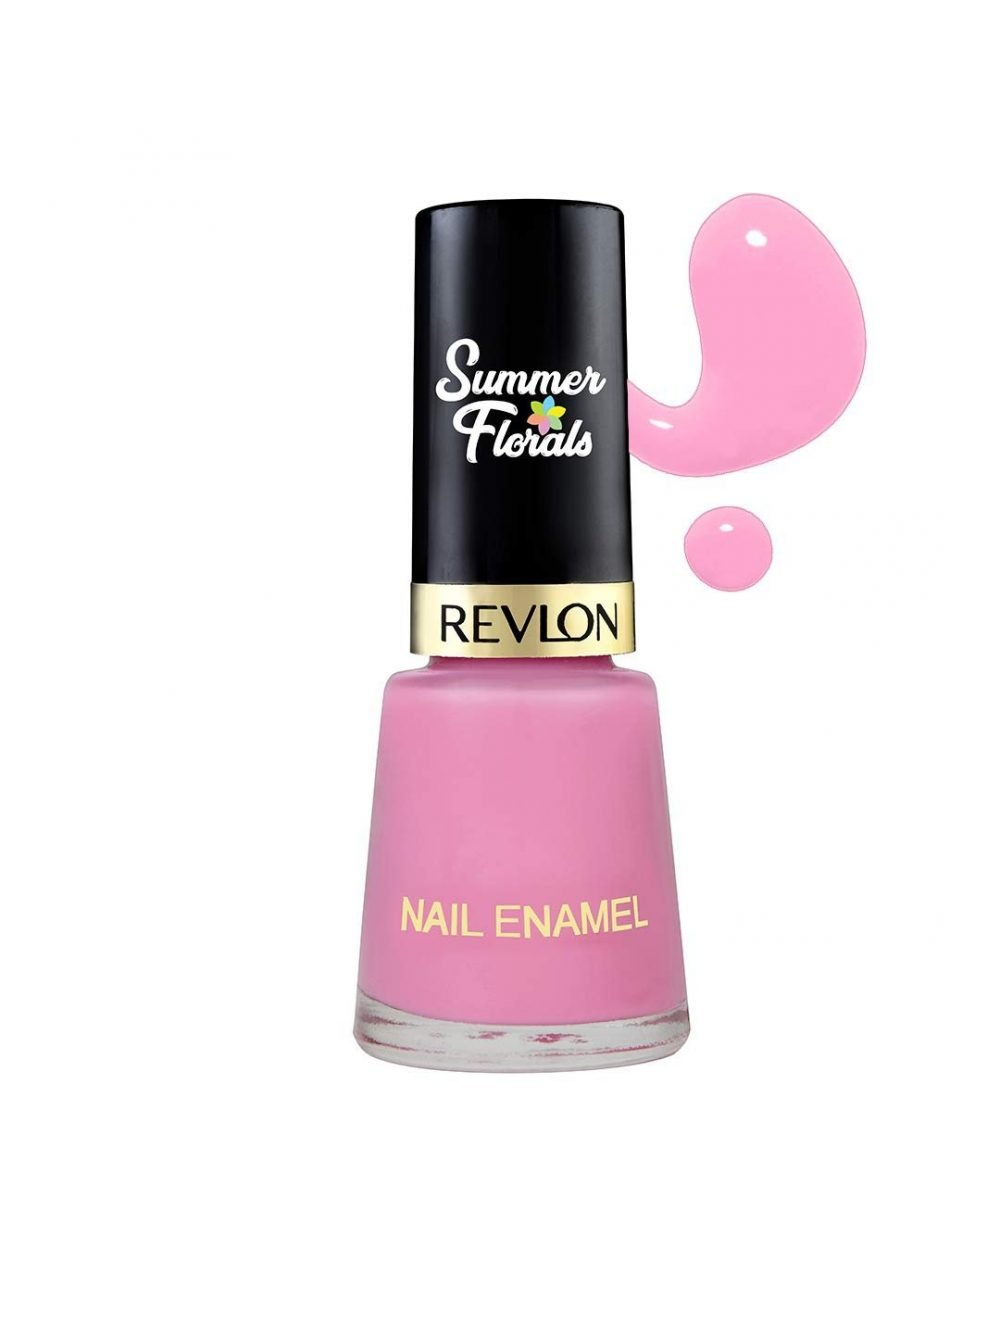 Revlon summer florals sweet 8ml